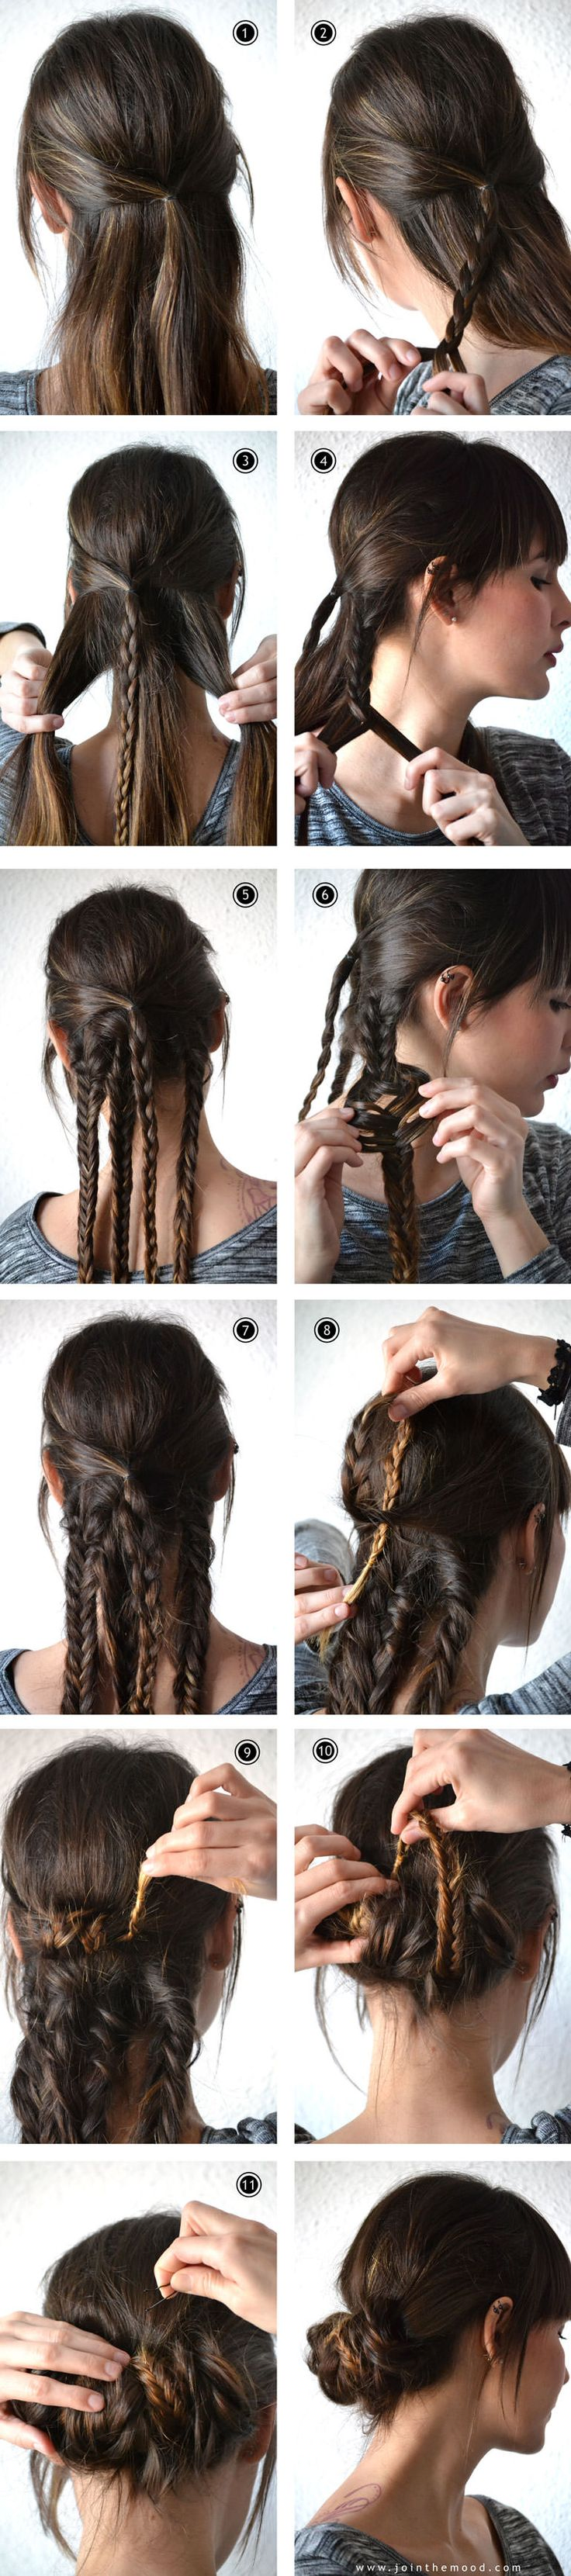 best images about beauty department on pinterest updo how to